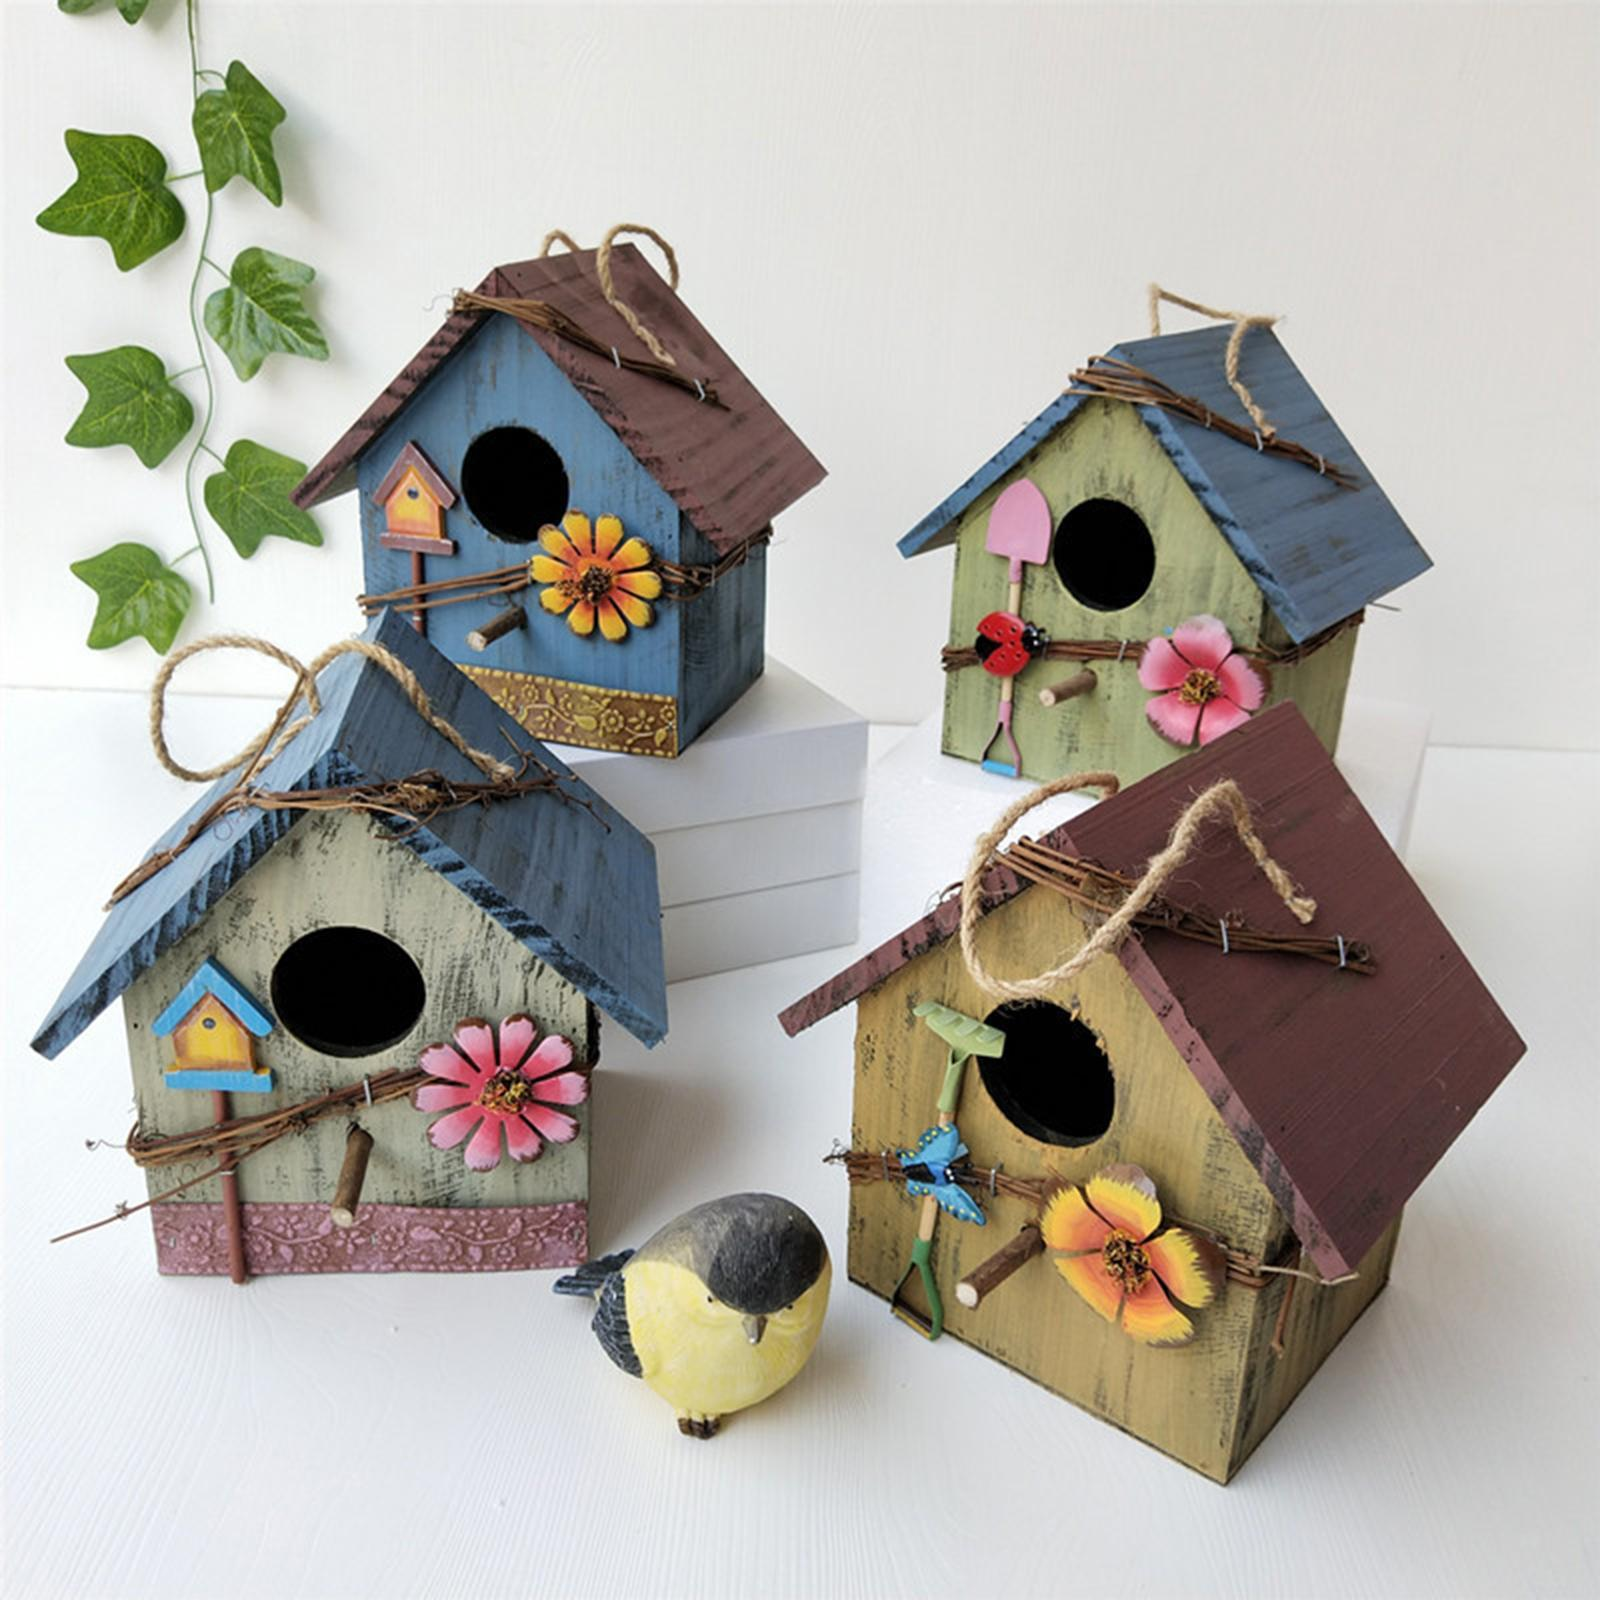 thumbnail 12 - Antique Hand Painted Wood Birdhouse Decorative Outdoor Bird House Garden